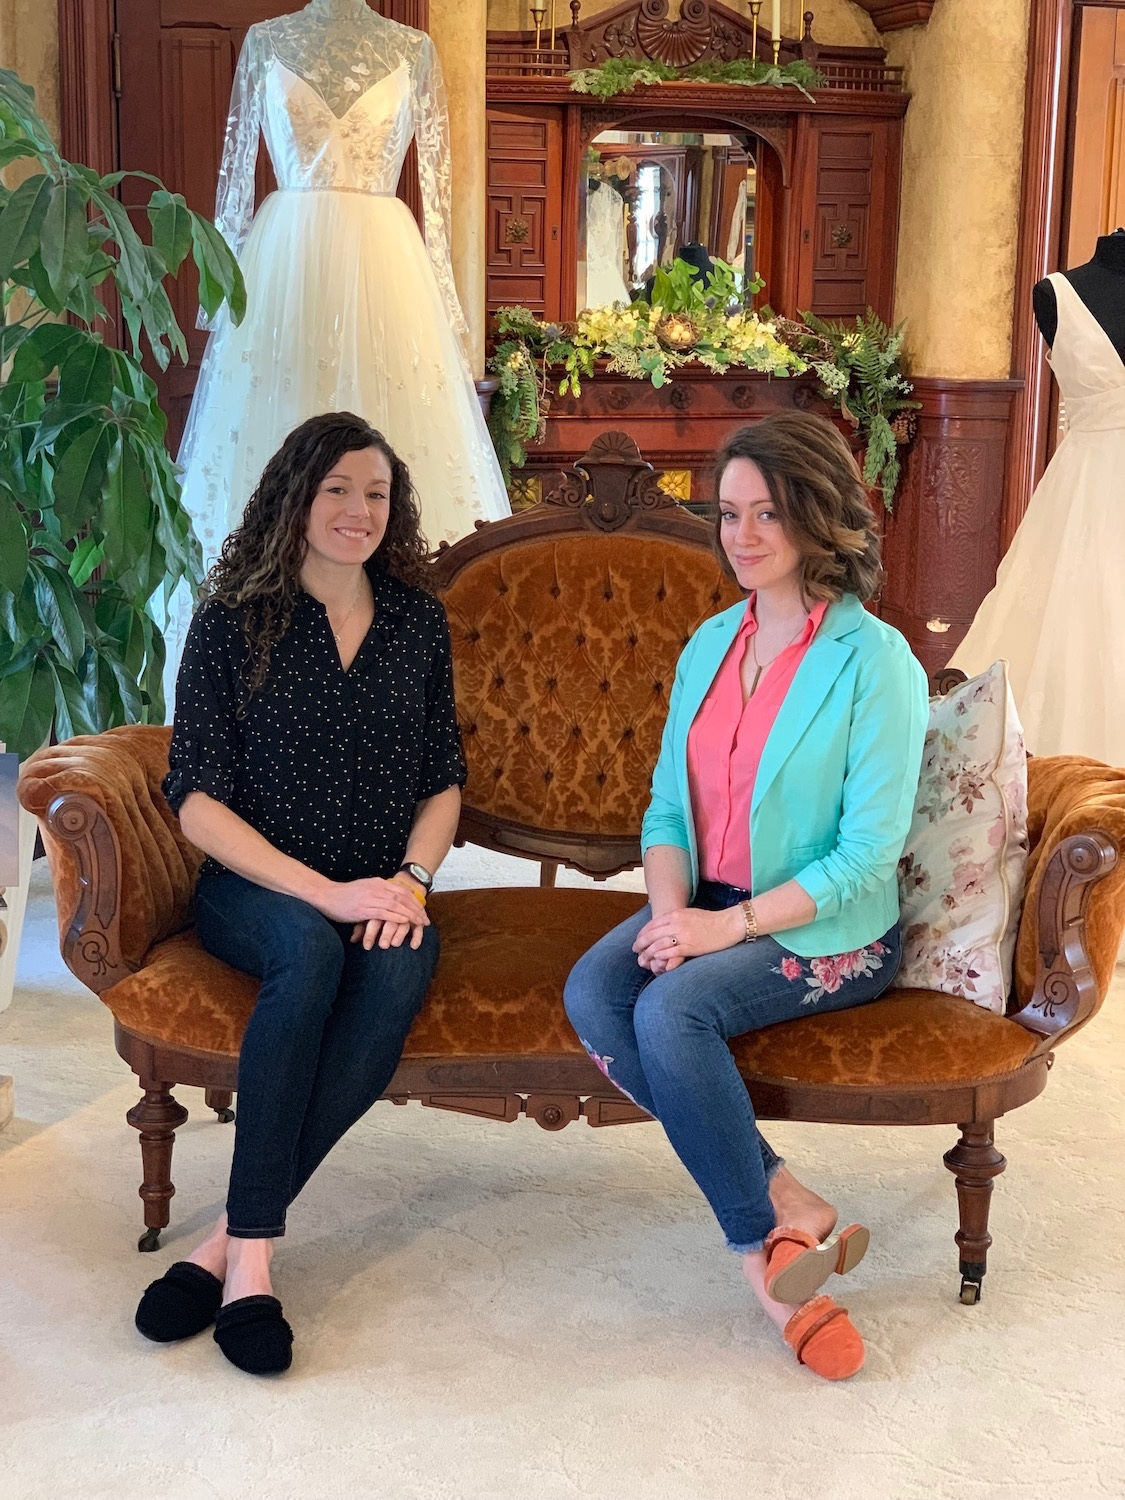 Something Bleu owners, Marissa Mackay and Kathryn Metzler, admit that this business venture is something they could never do on their own but knew that it would be wonderful to do together. The strengths they bring with them balance each other out. They are so excited to take the legacy that Denise built and bring it to a whole new generation.